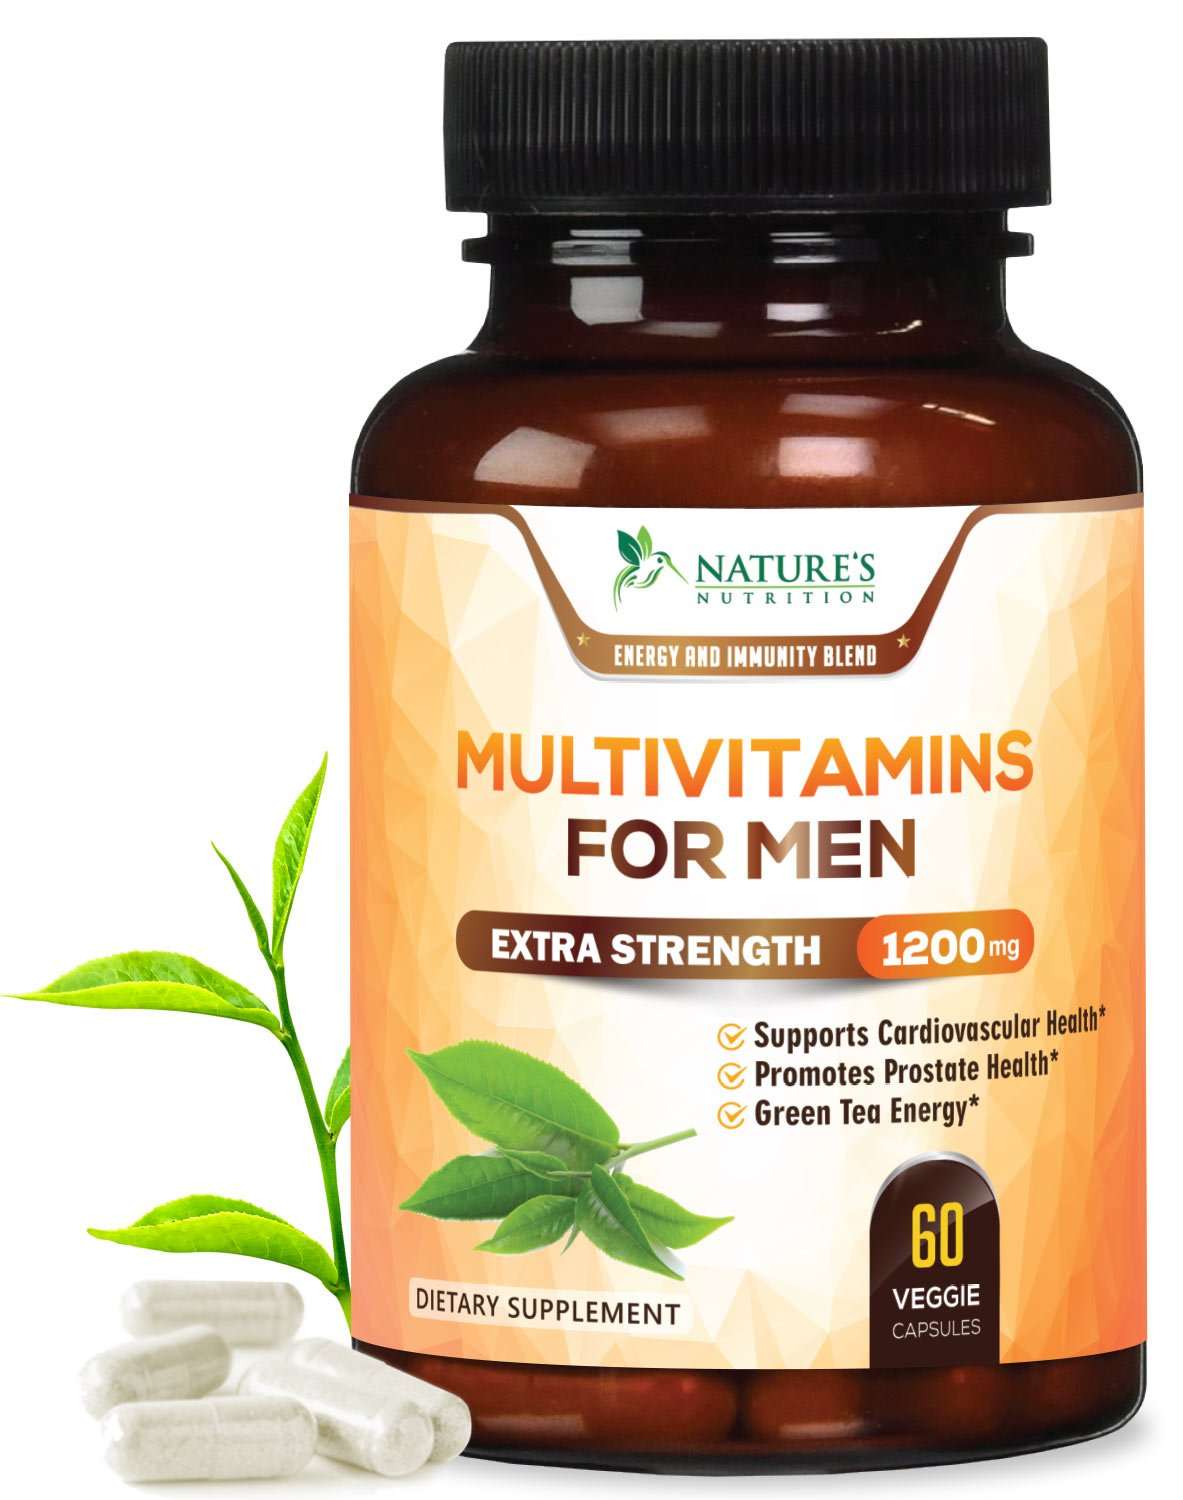 Once Daily Multivitamin for Men - with Whole Food Extracts with Vitamins C, D, E, B12, Saw Palmetto, Echinacea, Zinc, Calcium & Magnesium. Non-GMO Supplement - 60 Veggie Capsules